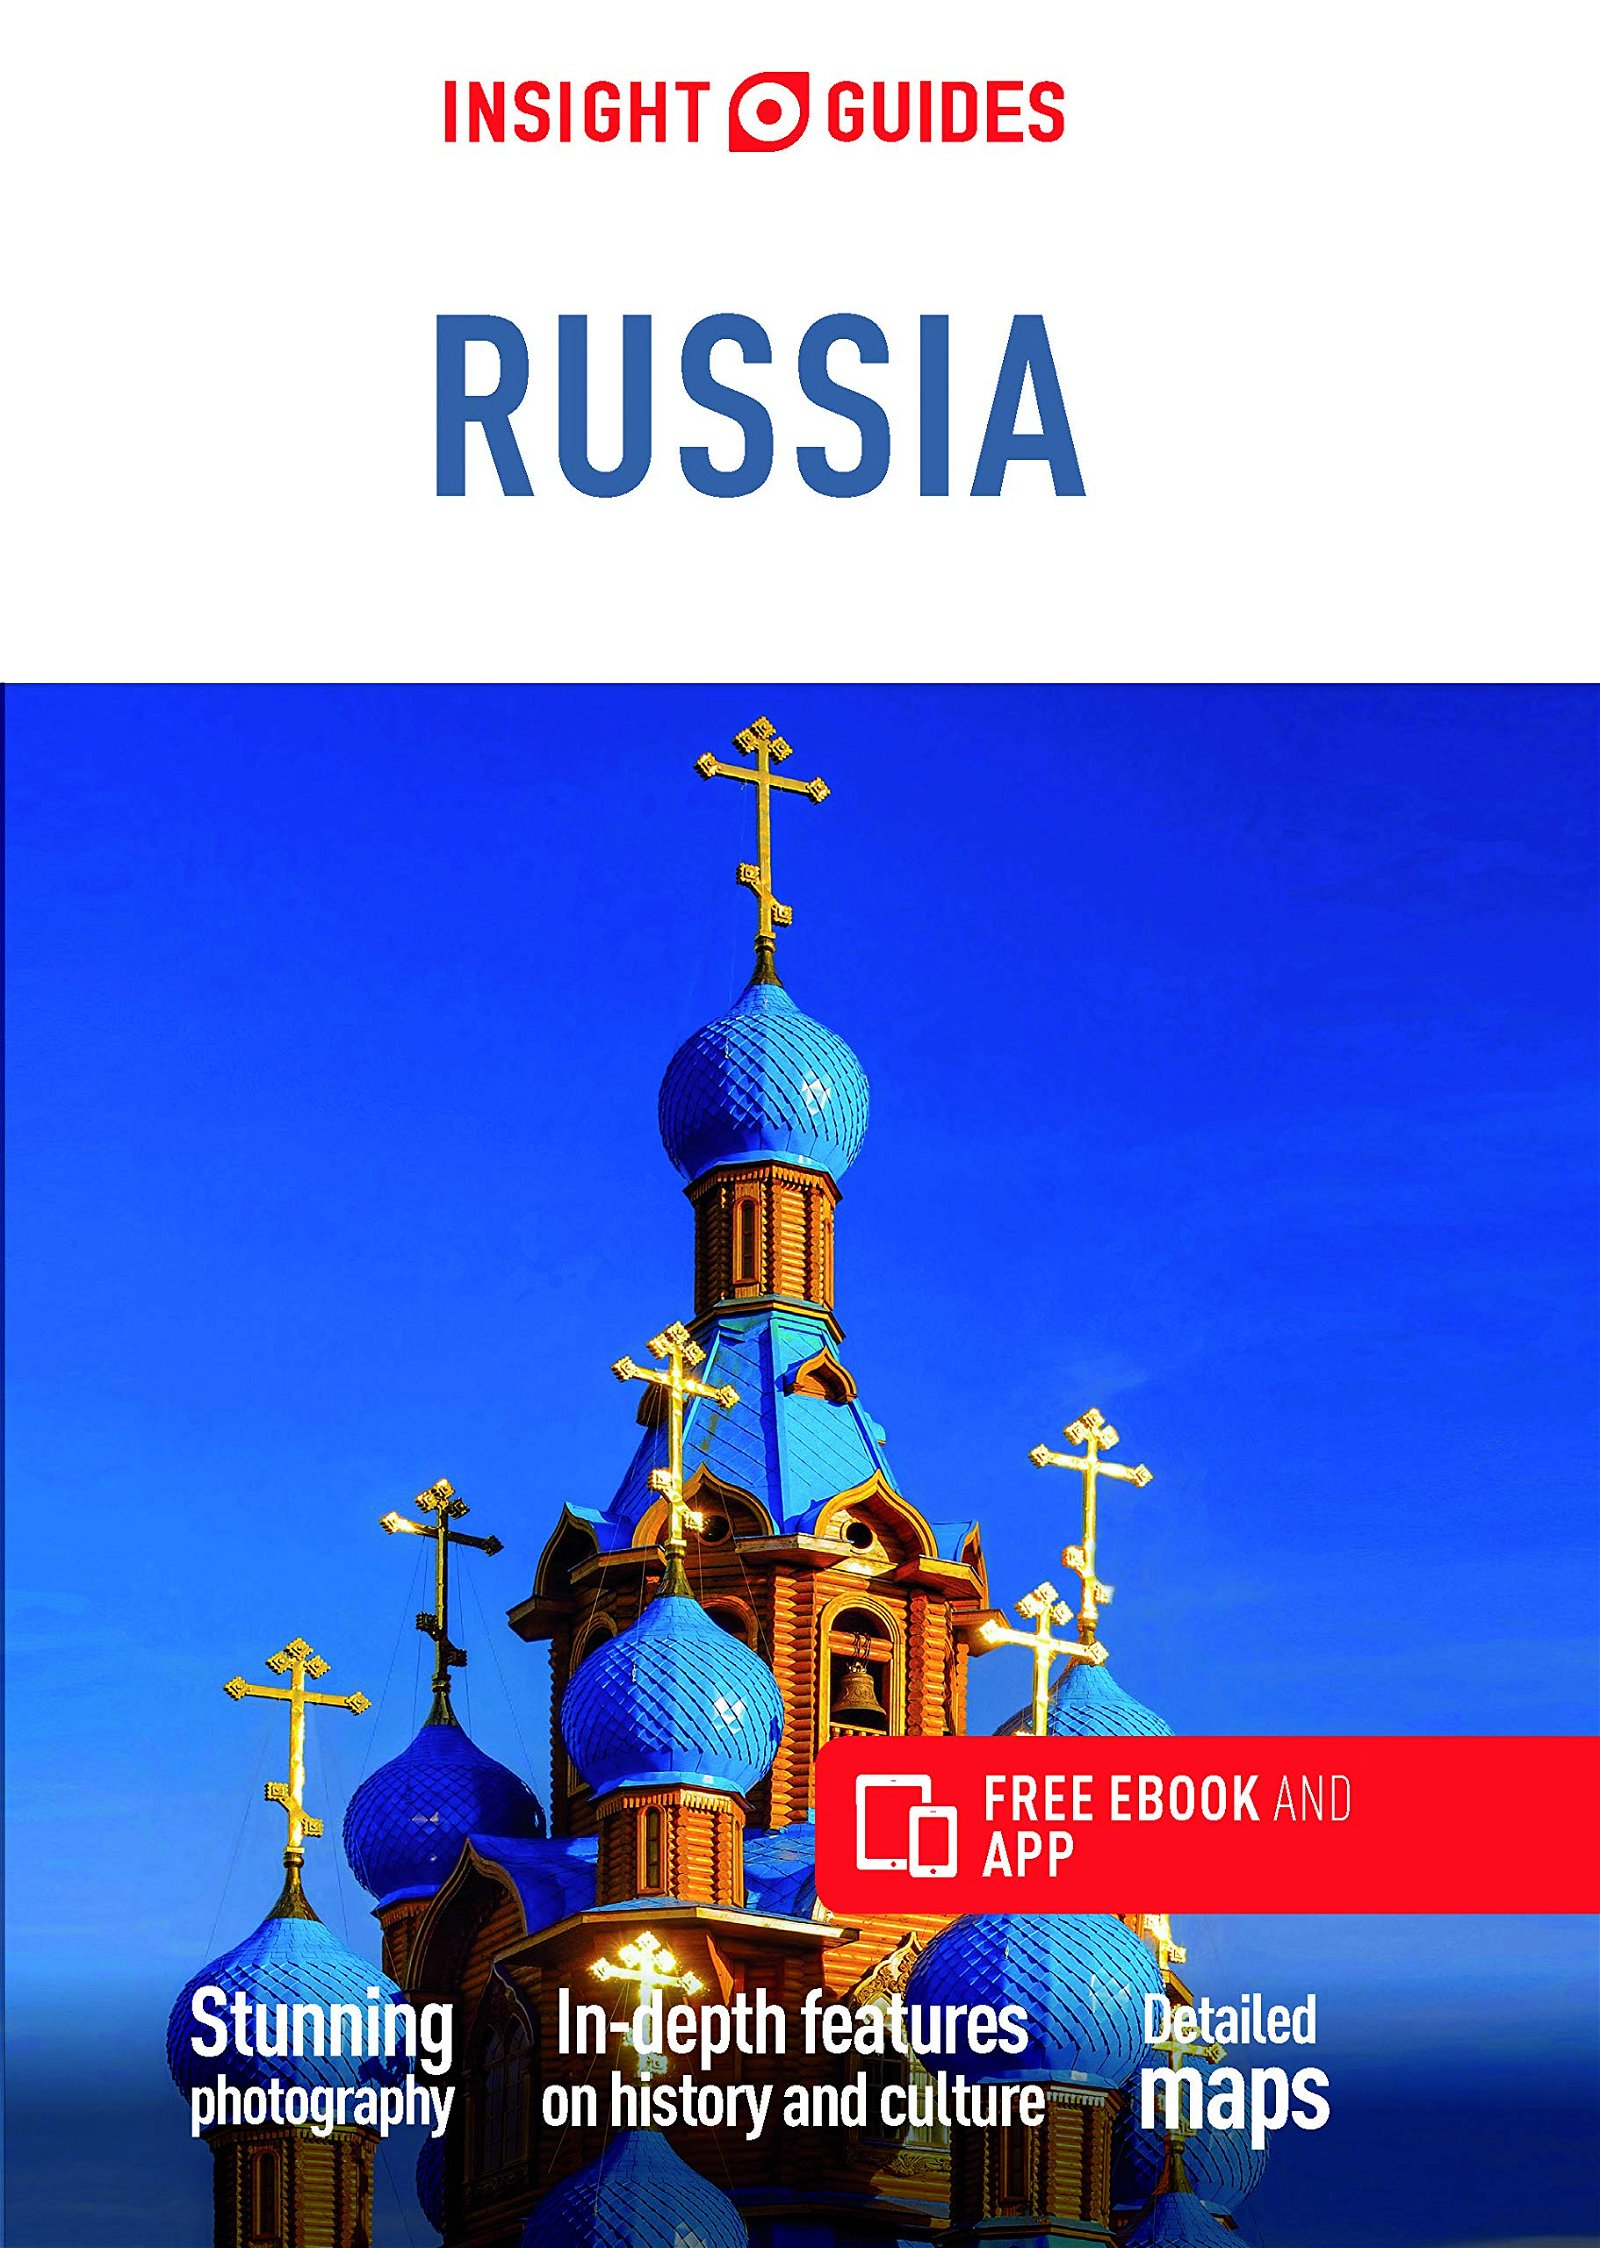 Insight Guide Russia 9781839050244  APA Insight Guides/ Engels  Reisgidsen Rusland